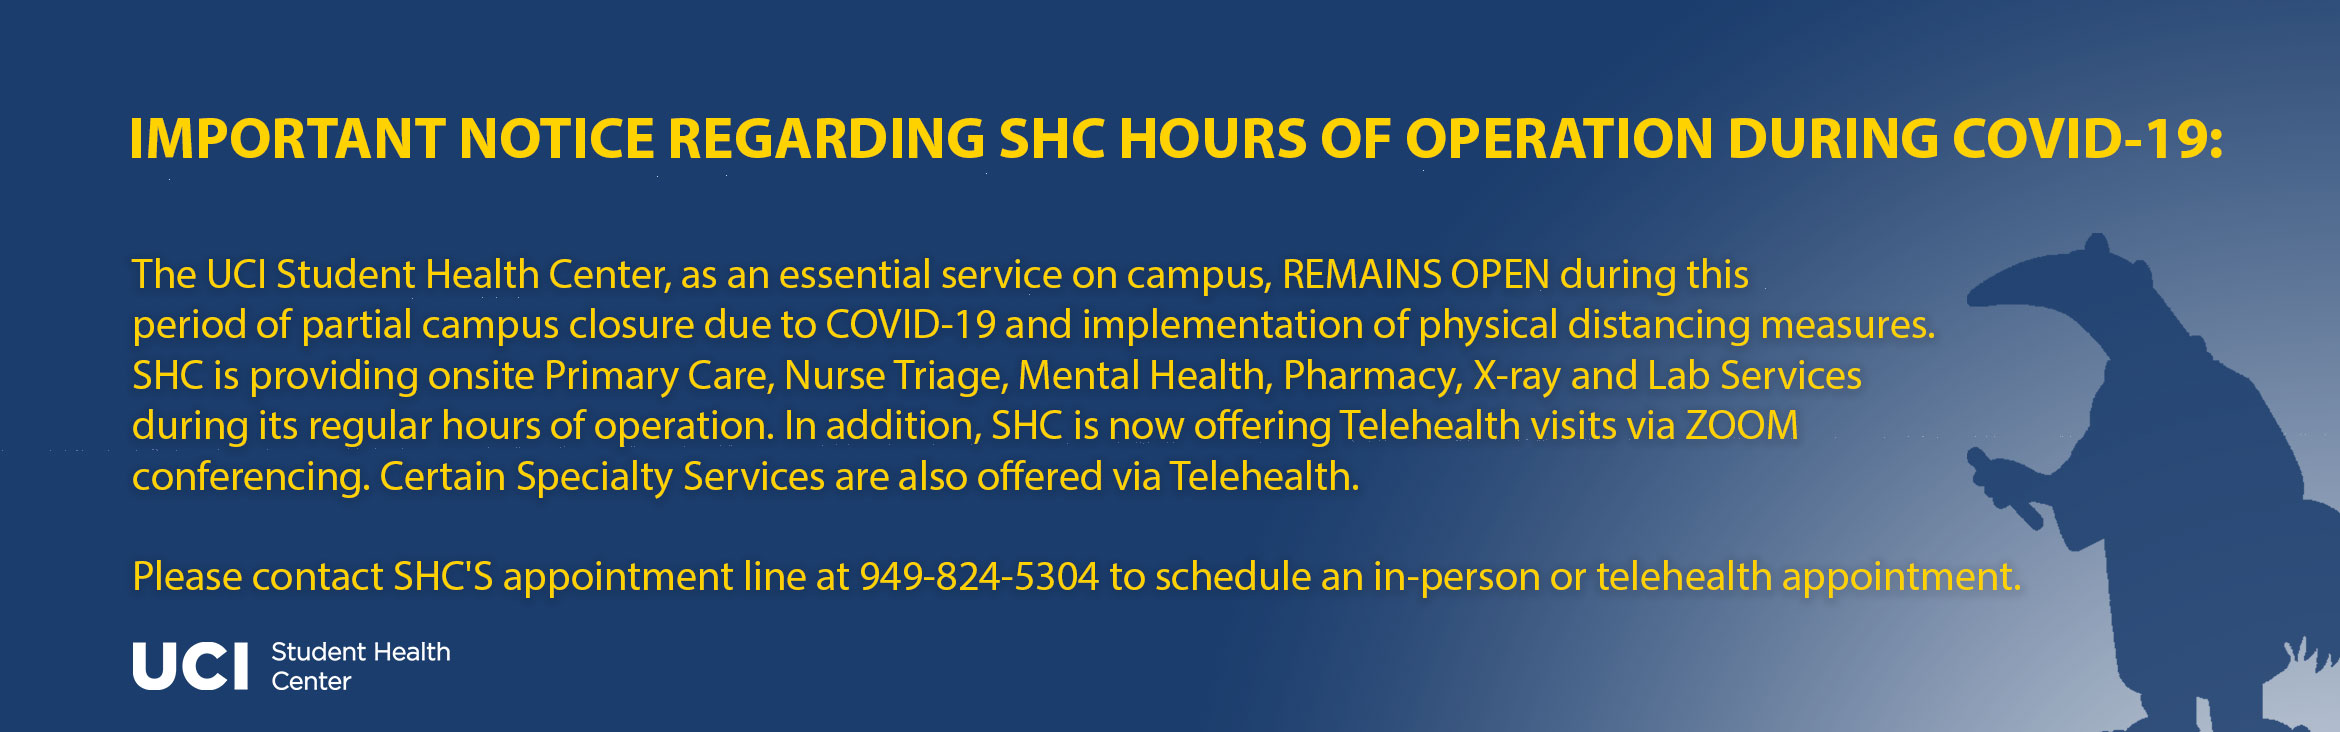 Important Notice regarding SHC Hours of Operation During COVID-19